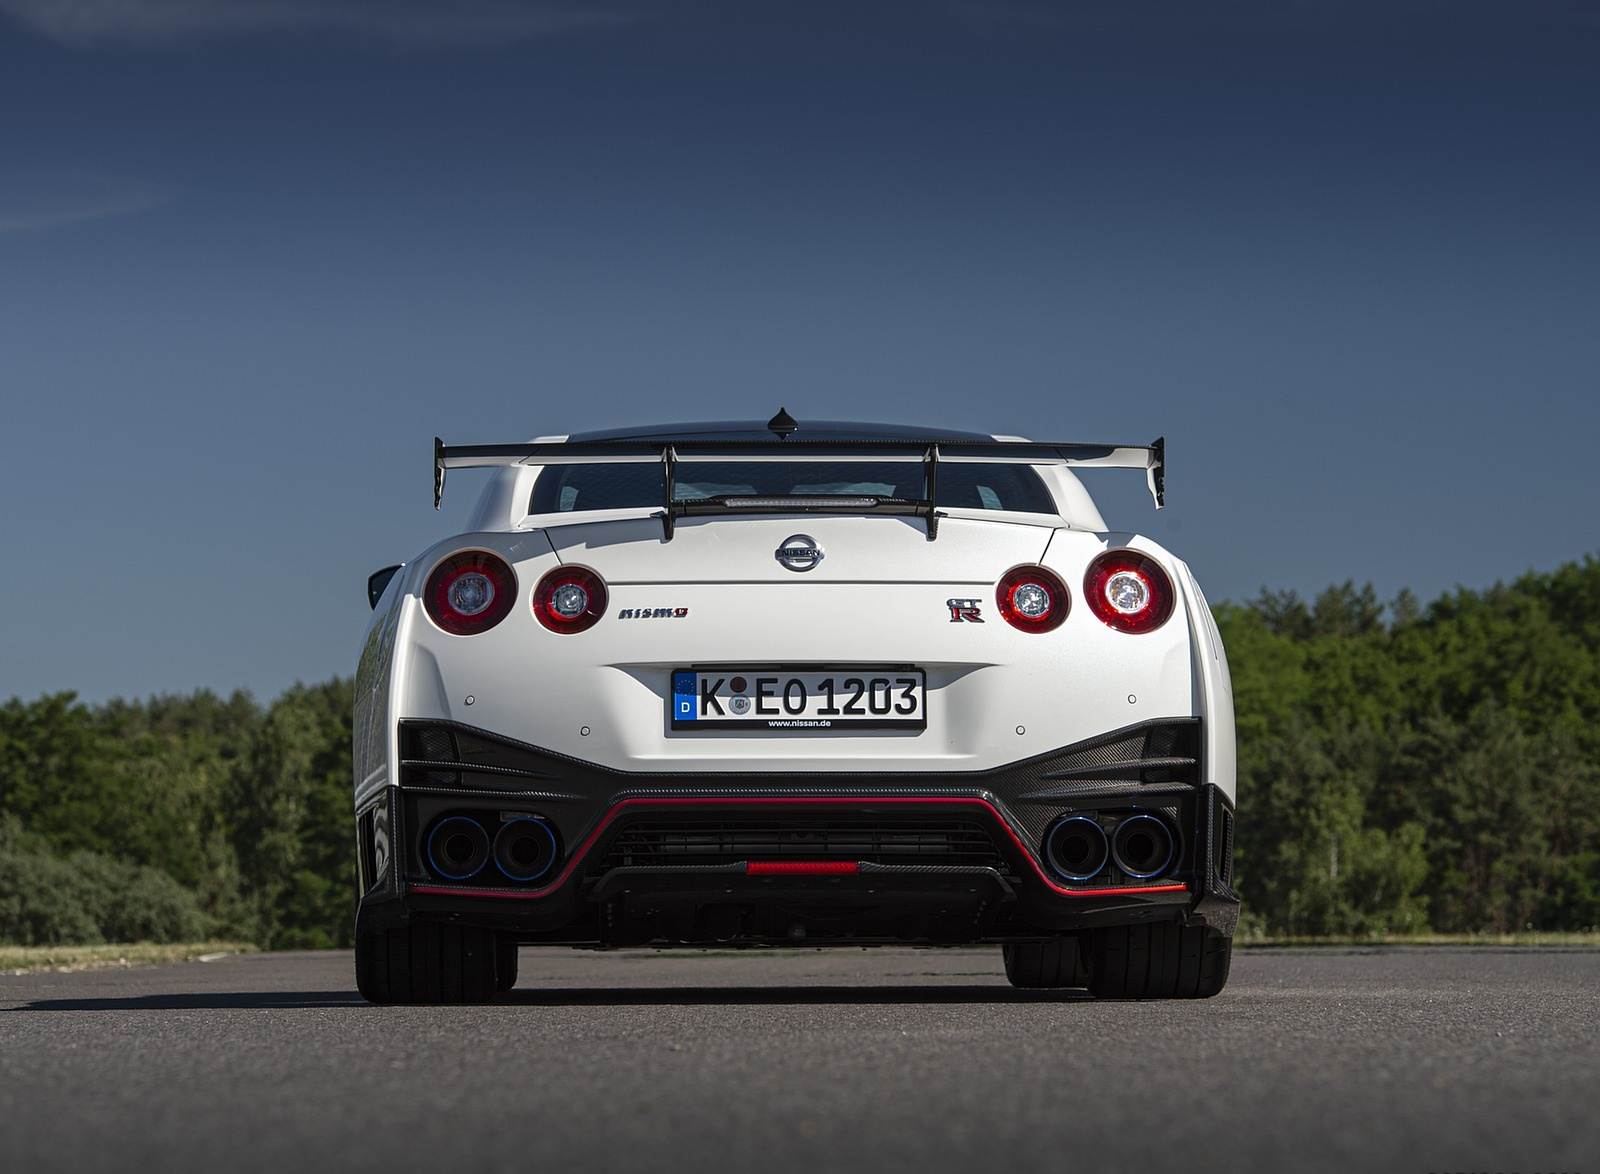 2020 Nissan GT-R NISMO Rear Wallpapers #32 of 90